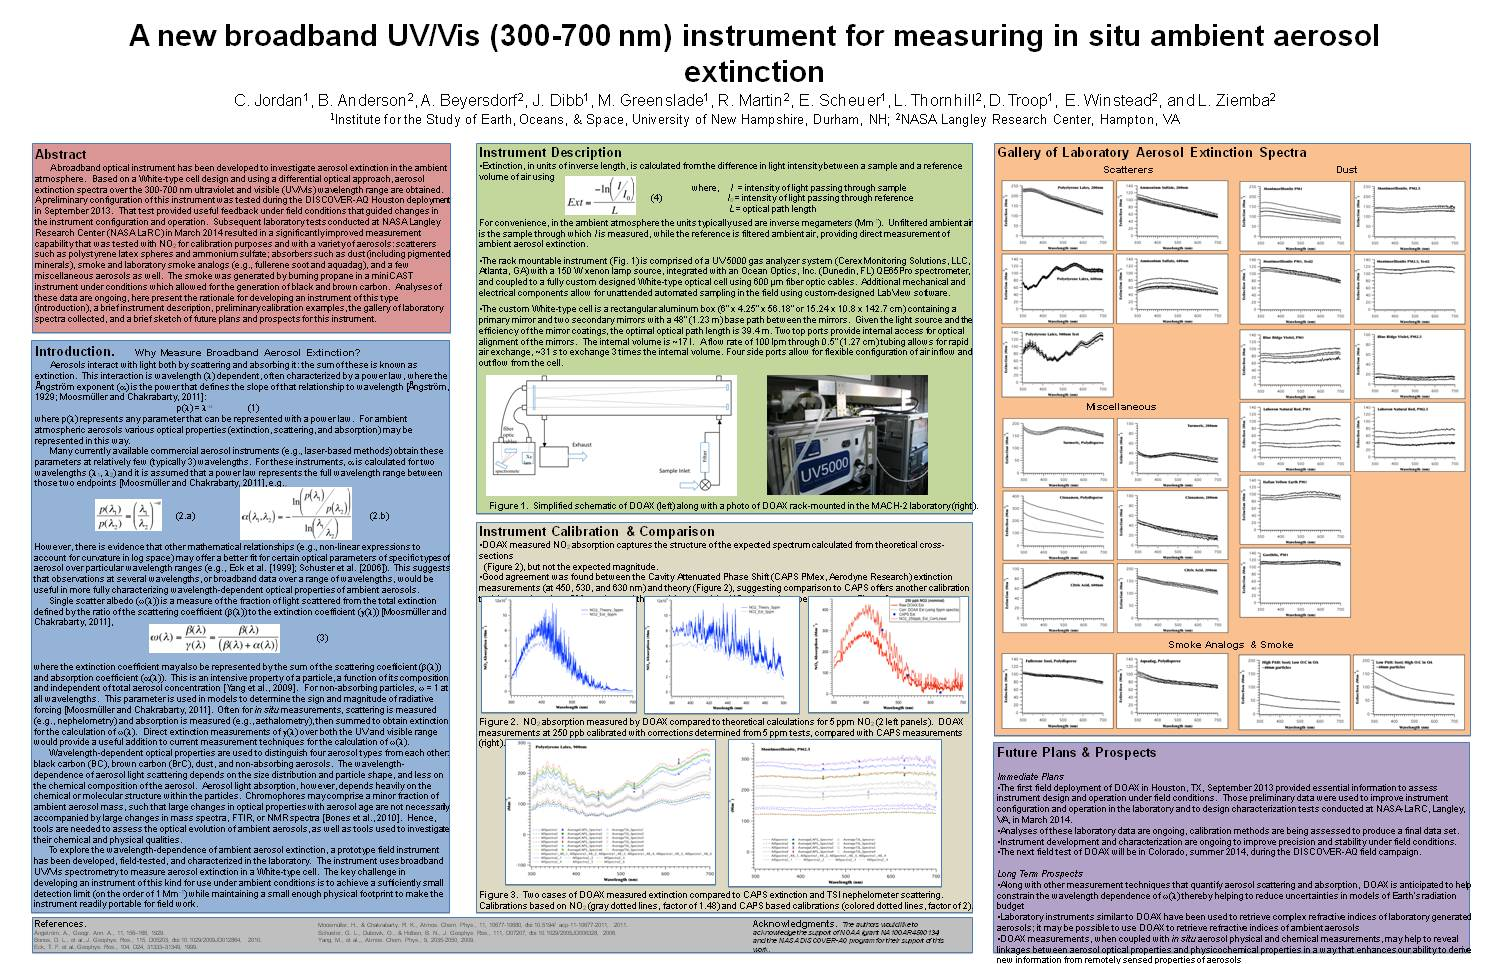 A New Broadband Uv/Vis (300-700 Nm) Instrument For Measuring In Situ Ambient Aerosol Extinction by CEJordan